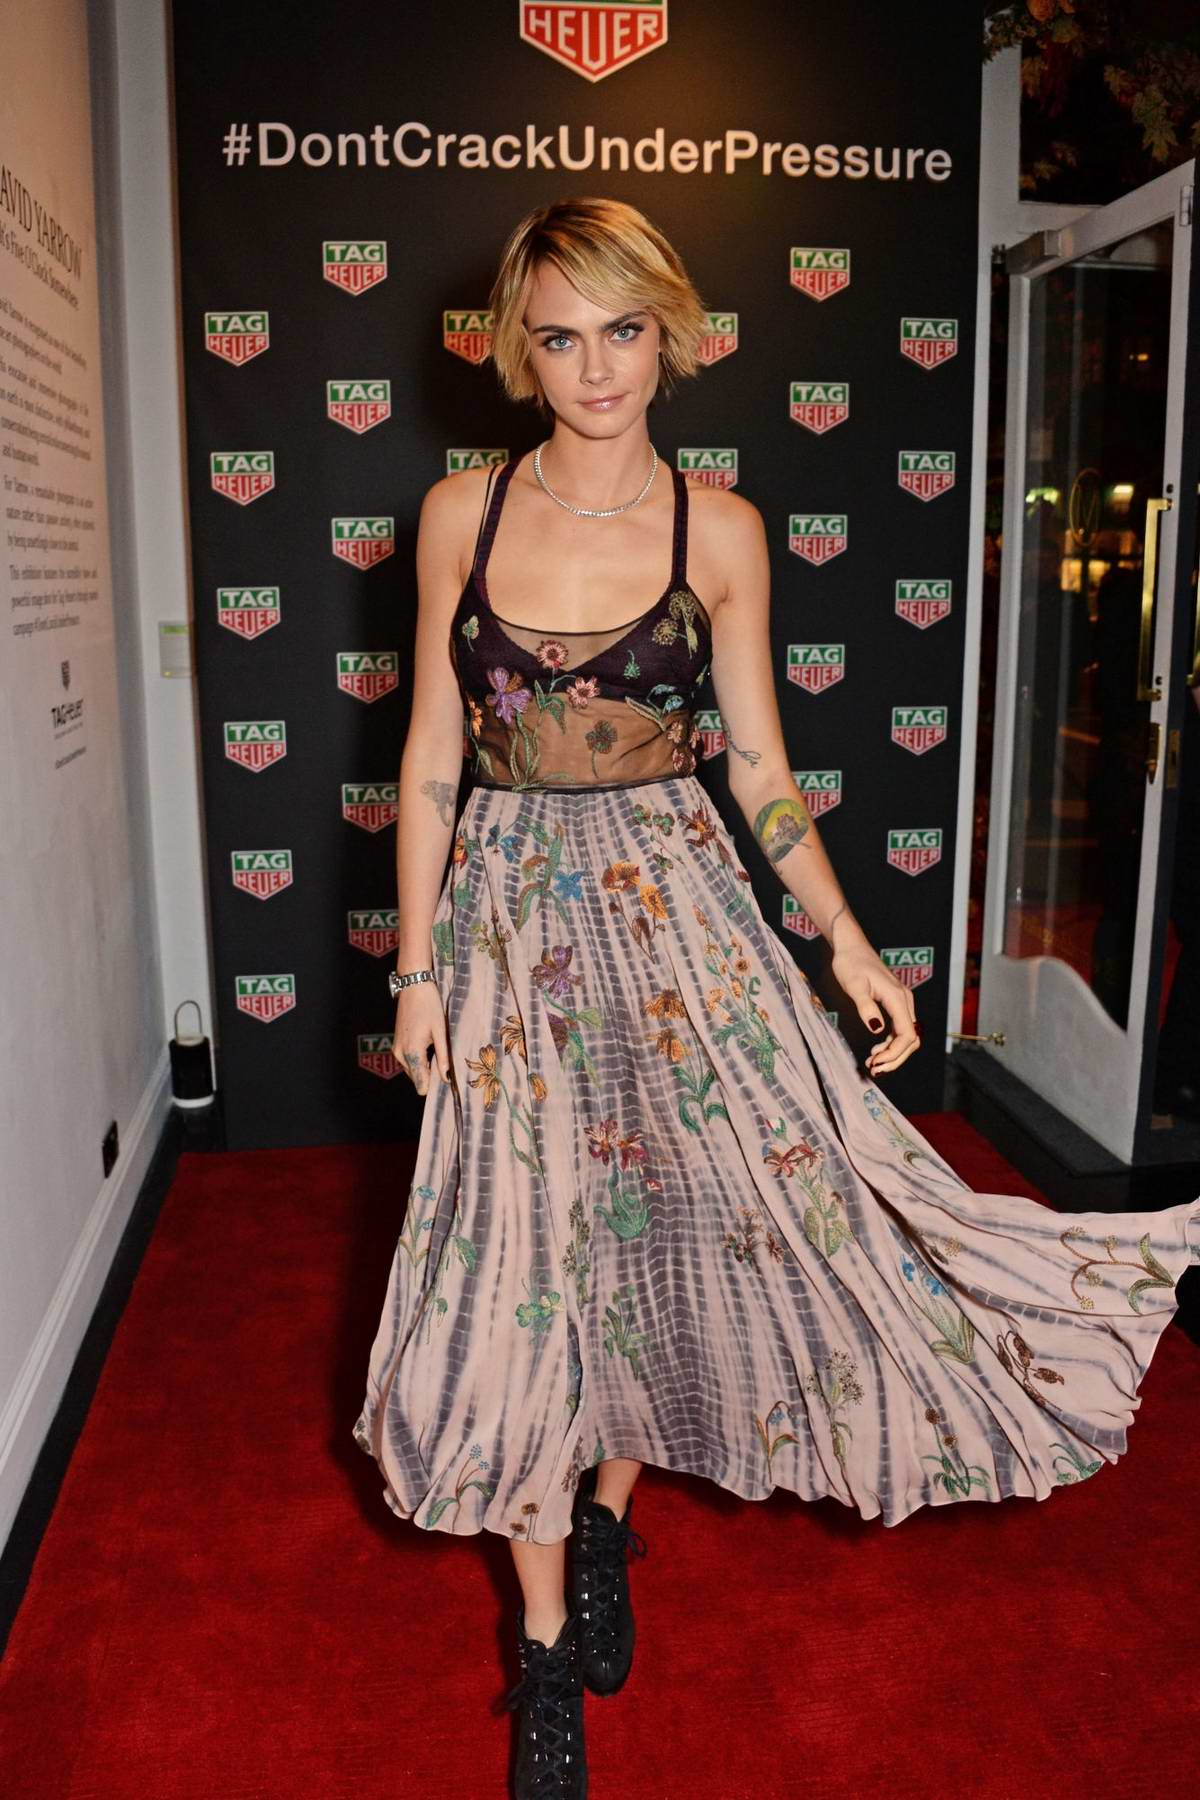 Cara Delevingne at the TAG Heuer X Cara Delevingne event at the Maddox Gallery in London, UK